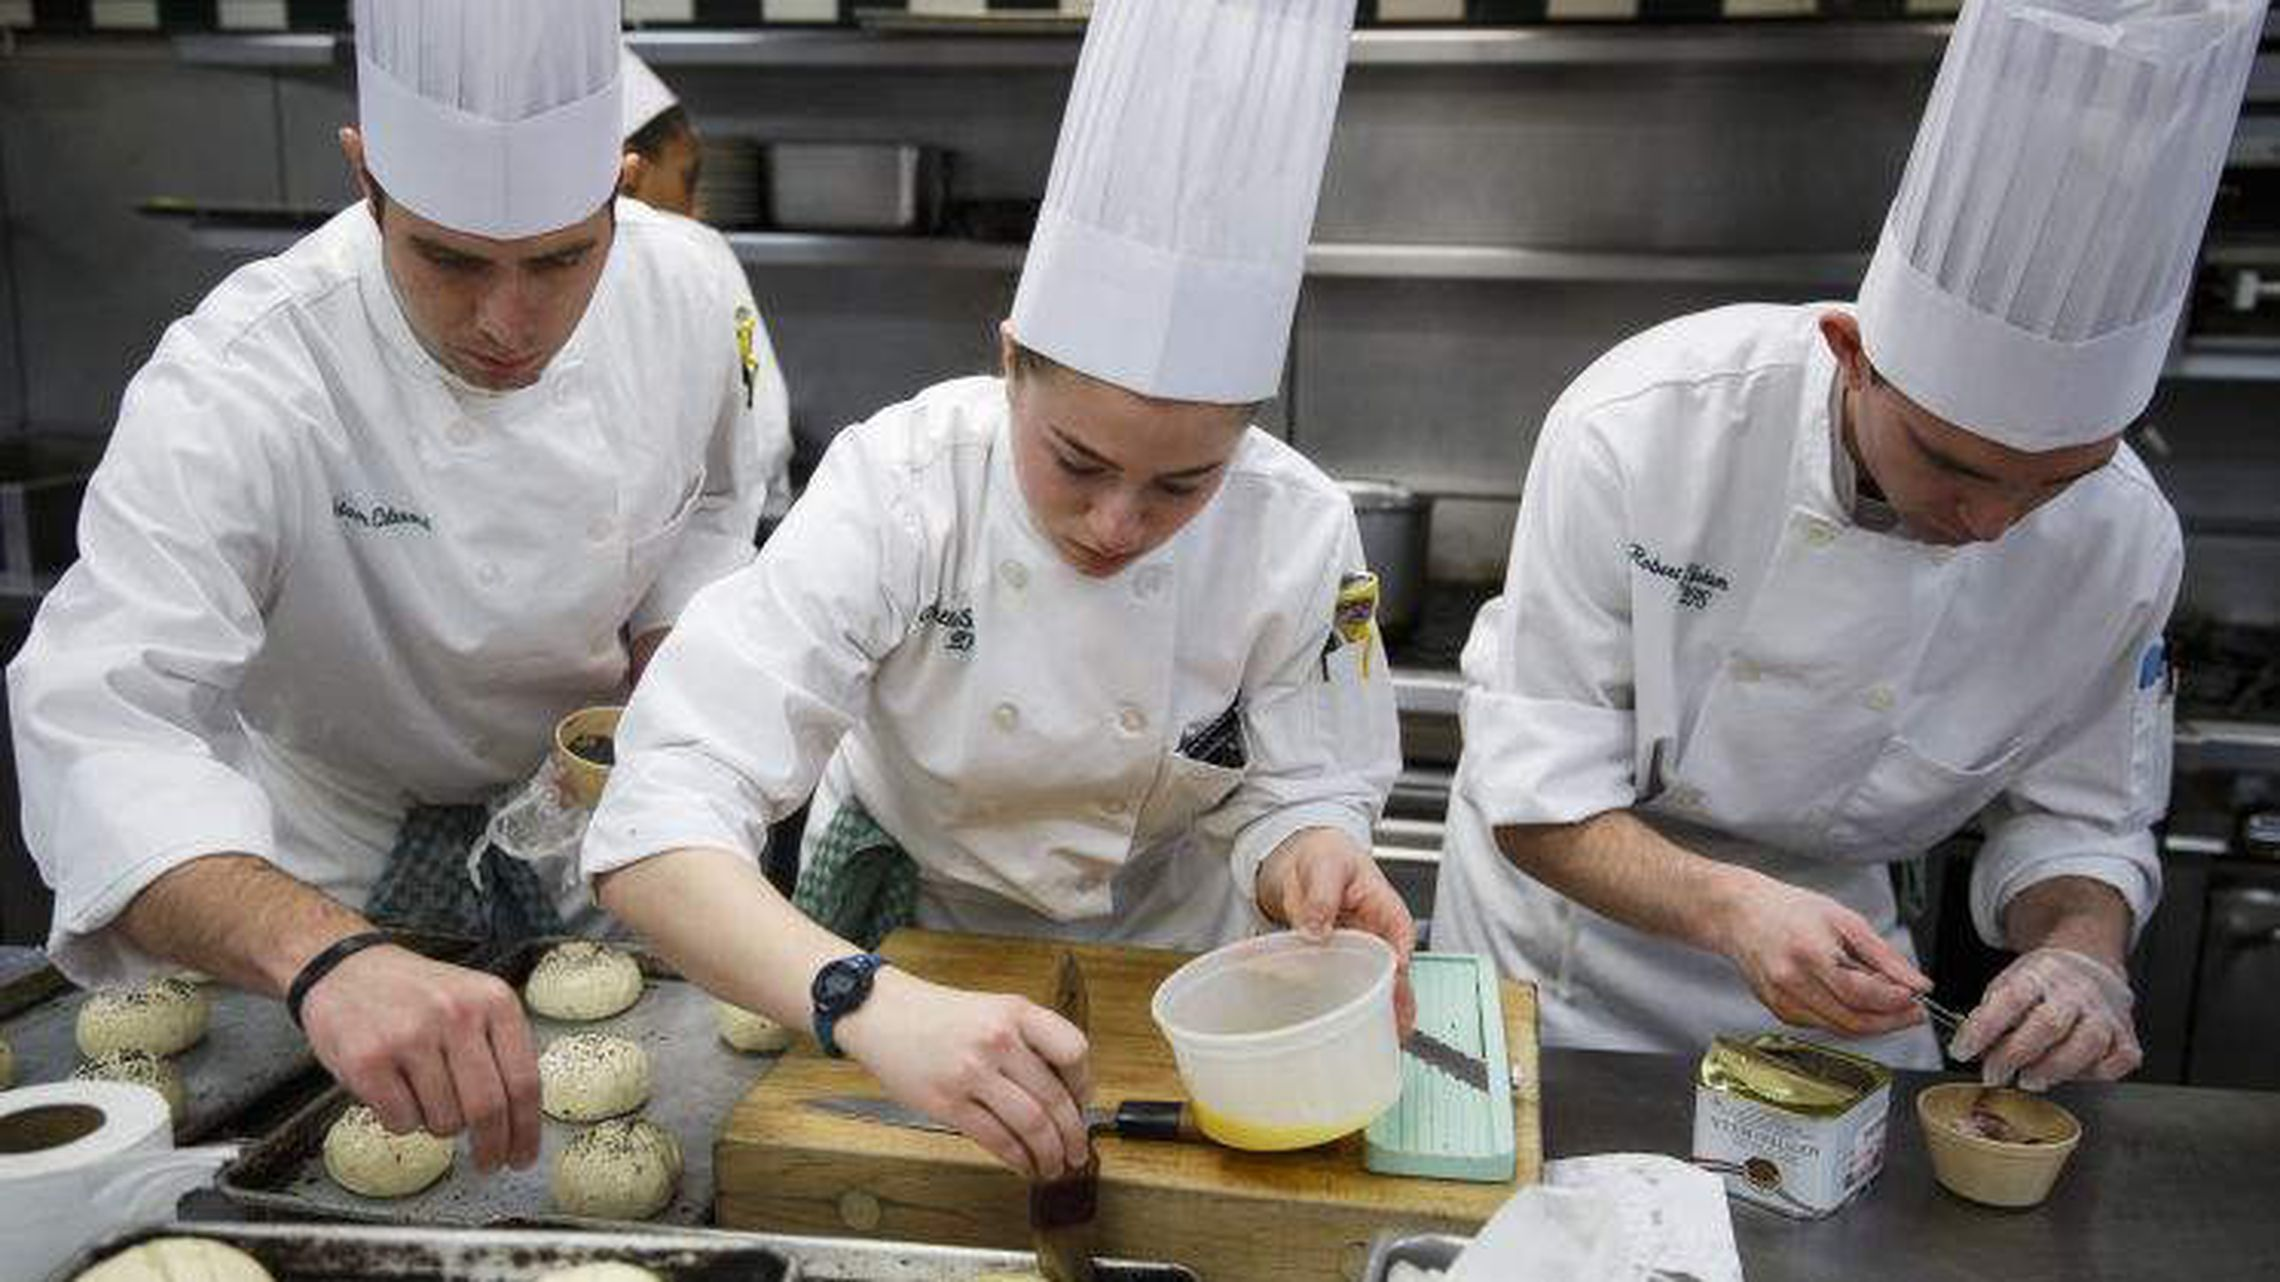 Culinary Institute Of America Adds Sports As Key Ingredient To Be A True Four Year College